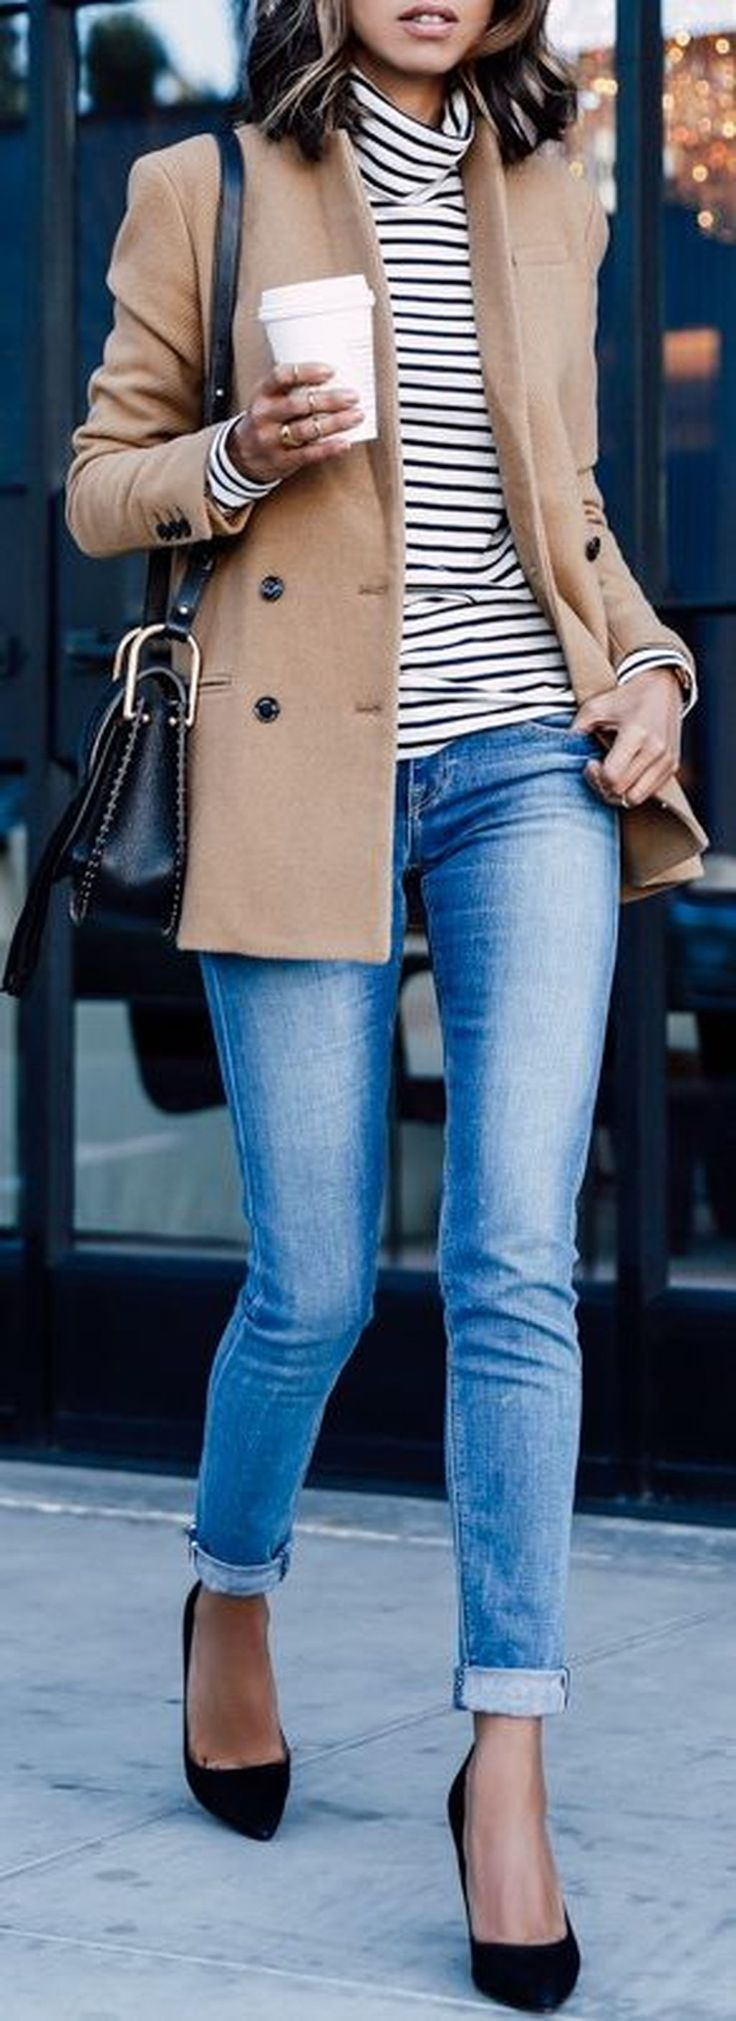 Nice 40 Simple and Stylish Winter Outfits Ideas to Inspire Yourself. More at http://aksahinjewelry.com/2017/11/19/40-simple-stylish-winter-outfits-ideas-inspire/